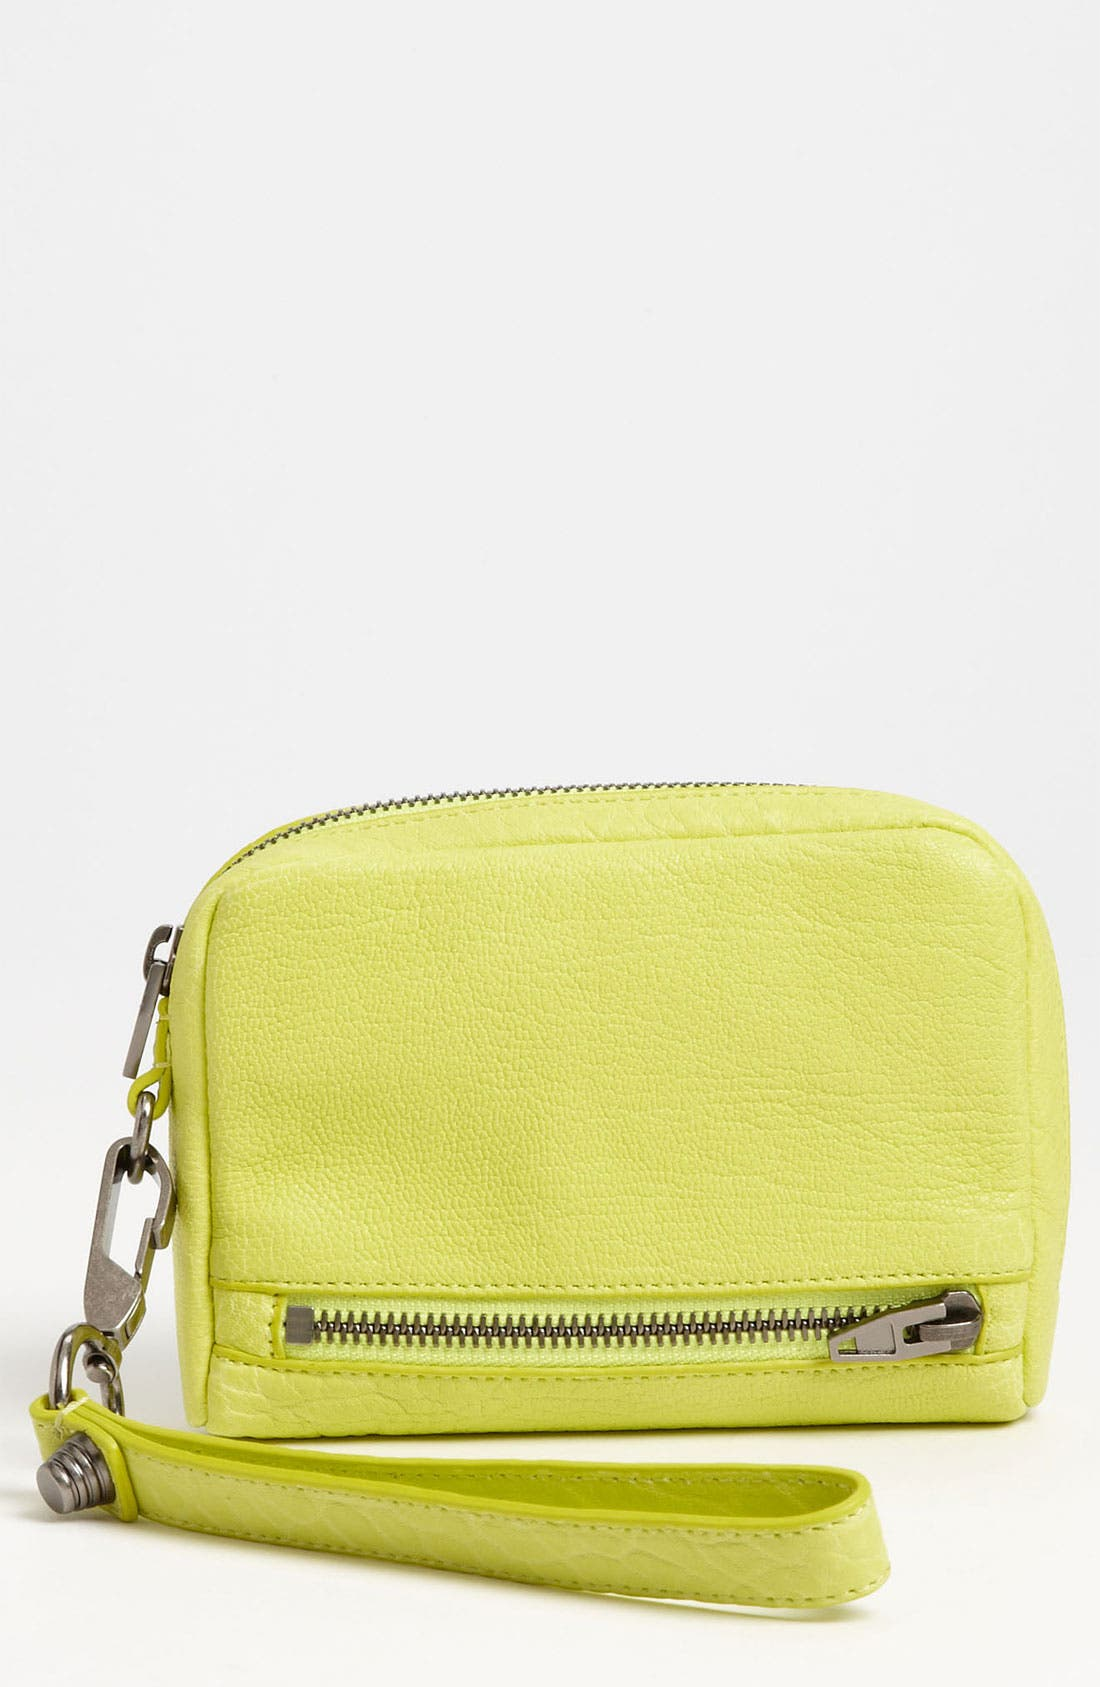 Main Image - Alexander Wang 'Fumo' Leather Wristlet